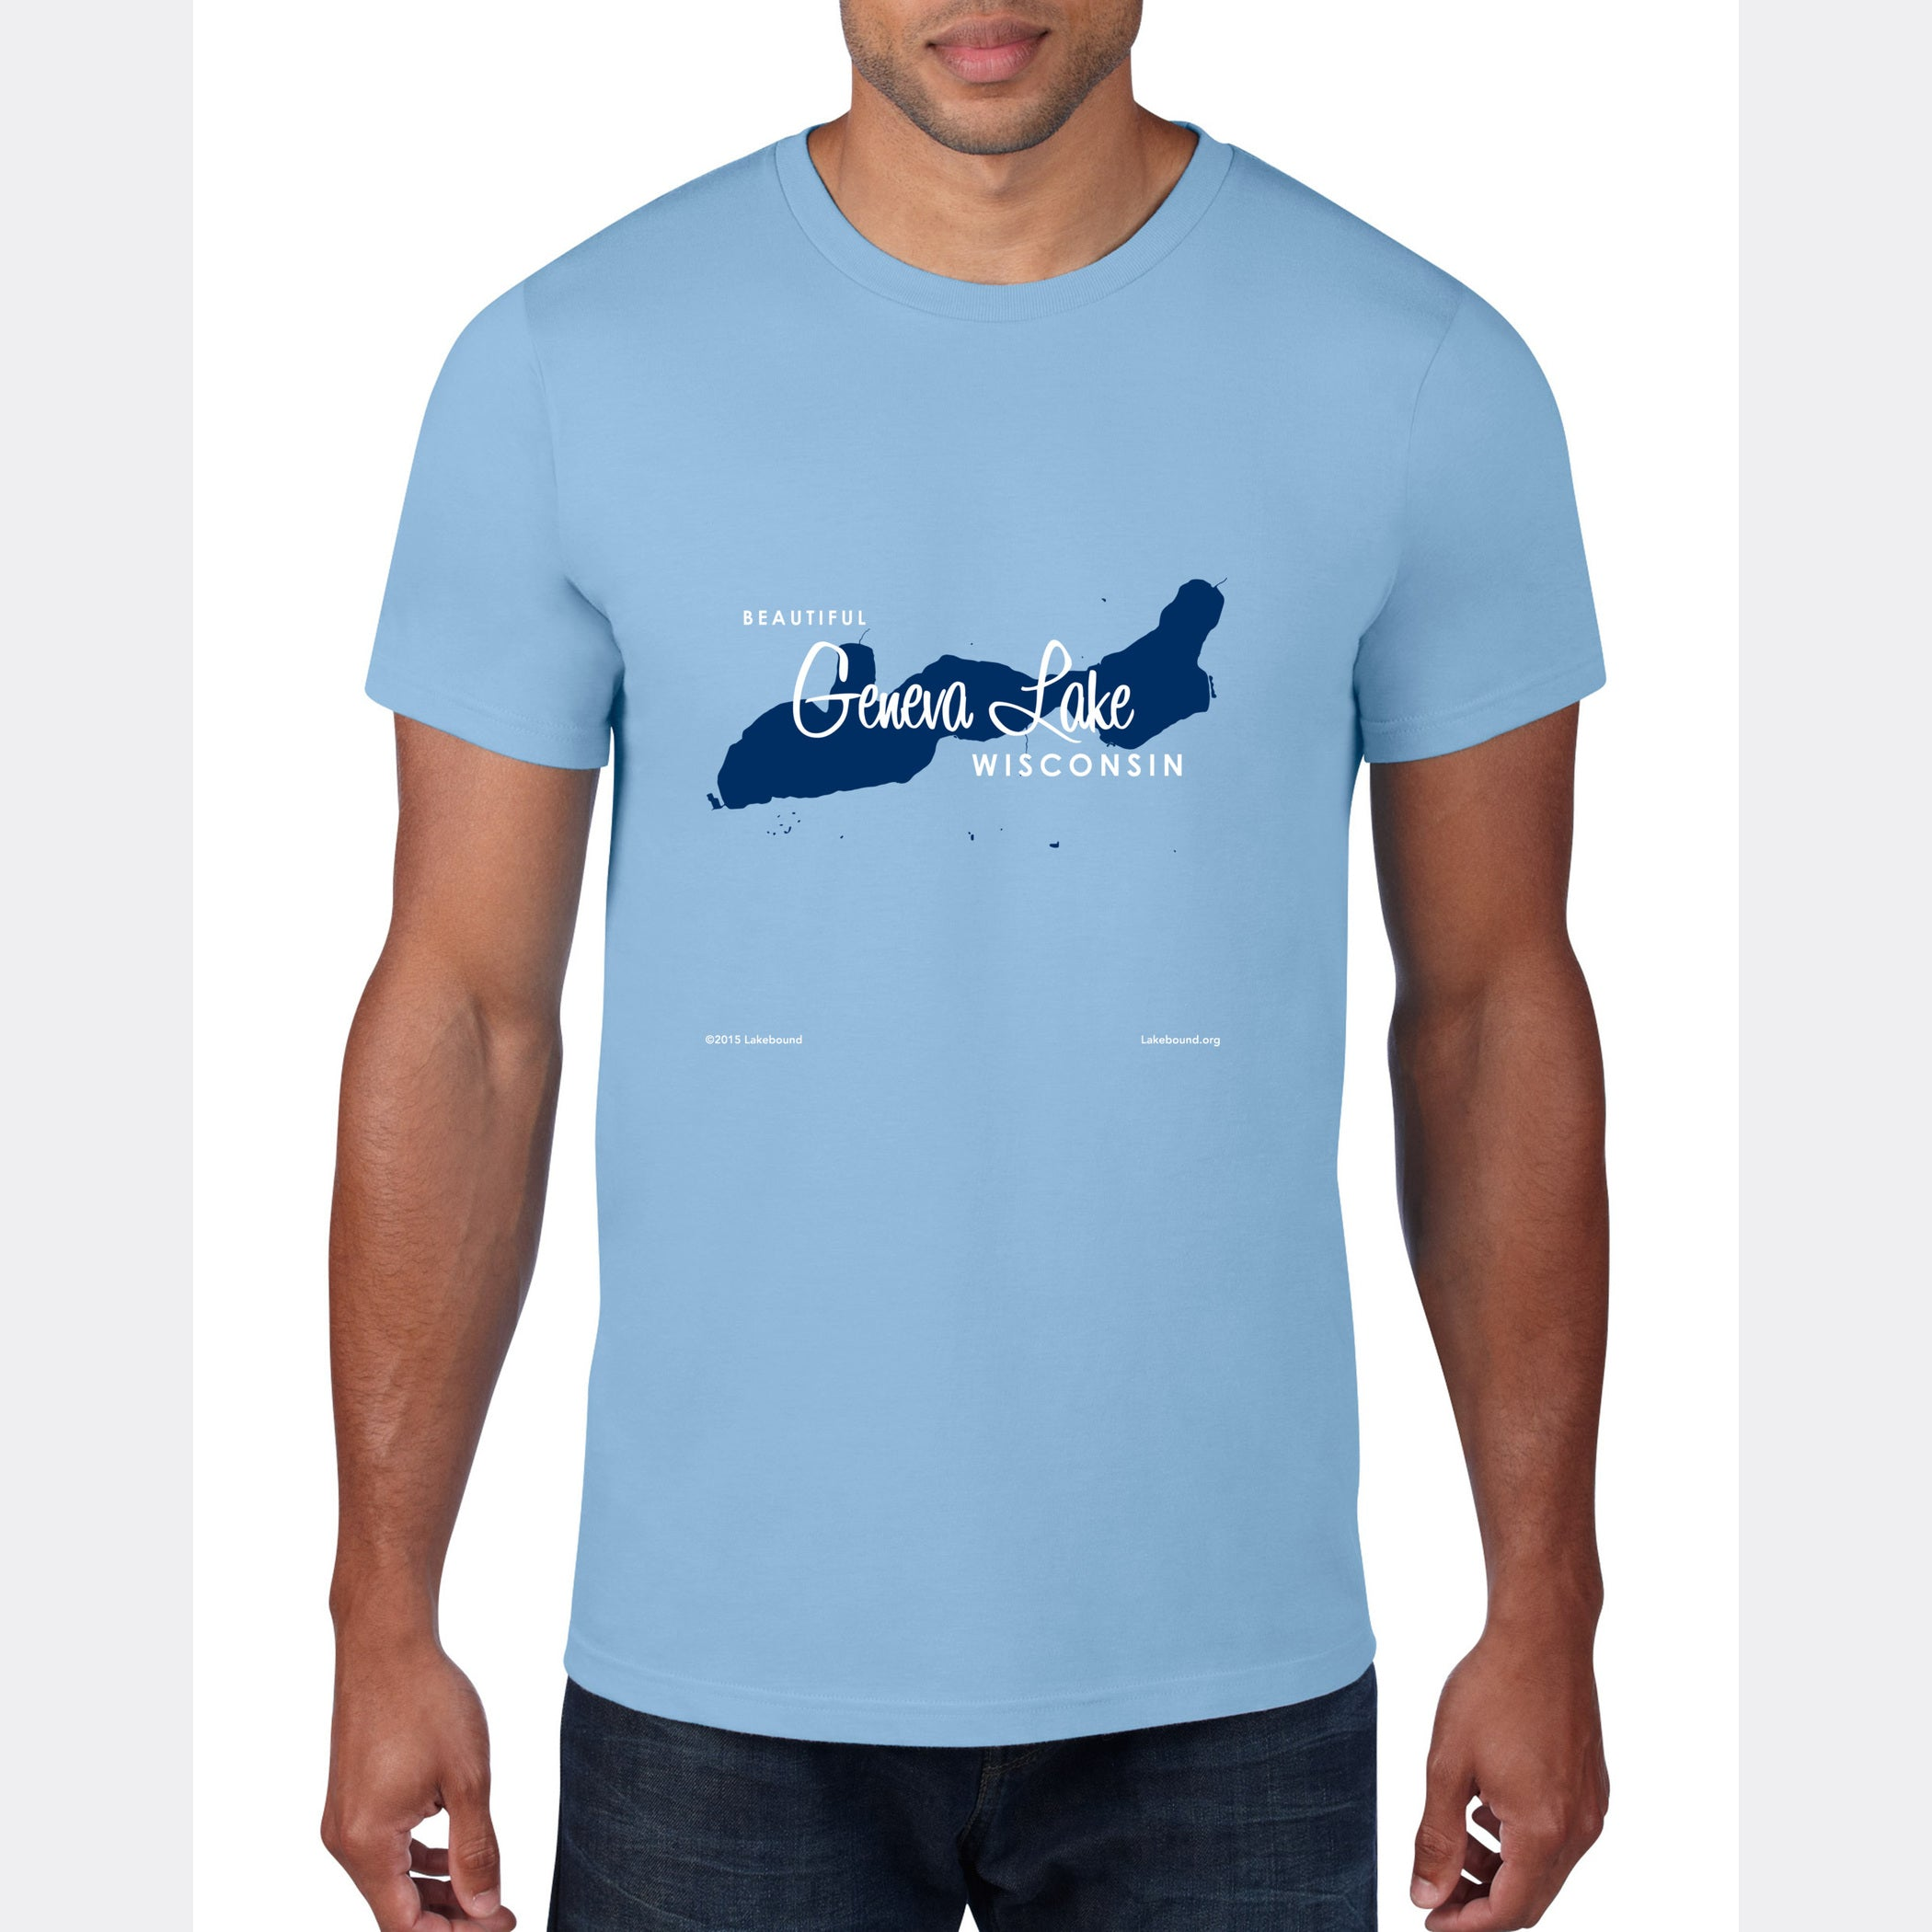 Geneva Lake Wisconsin, T-Shirt